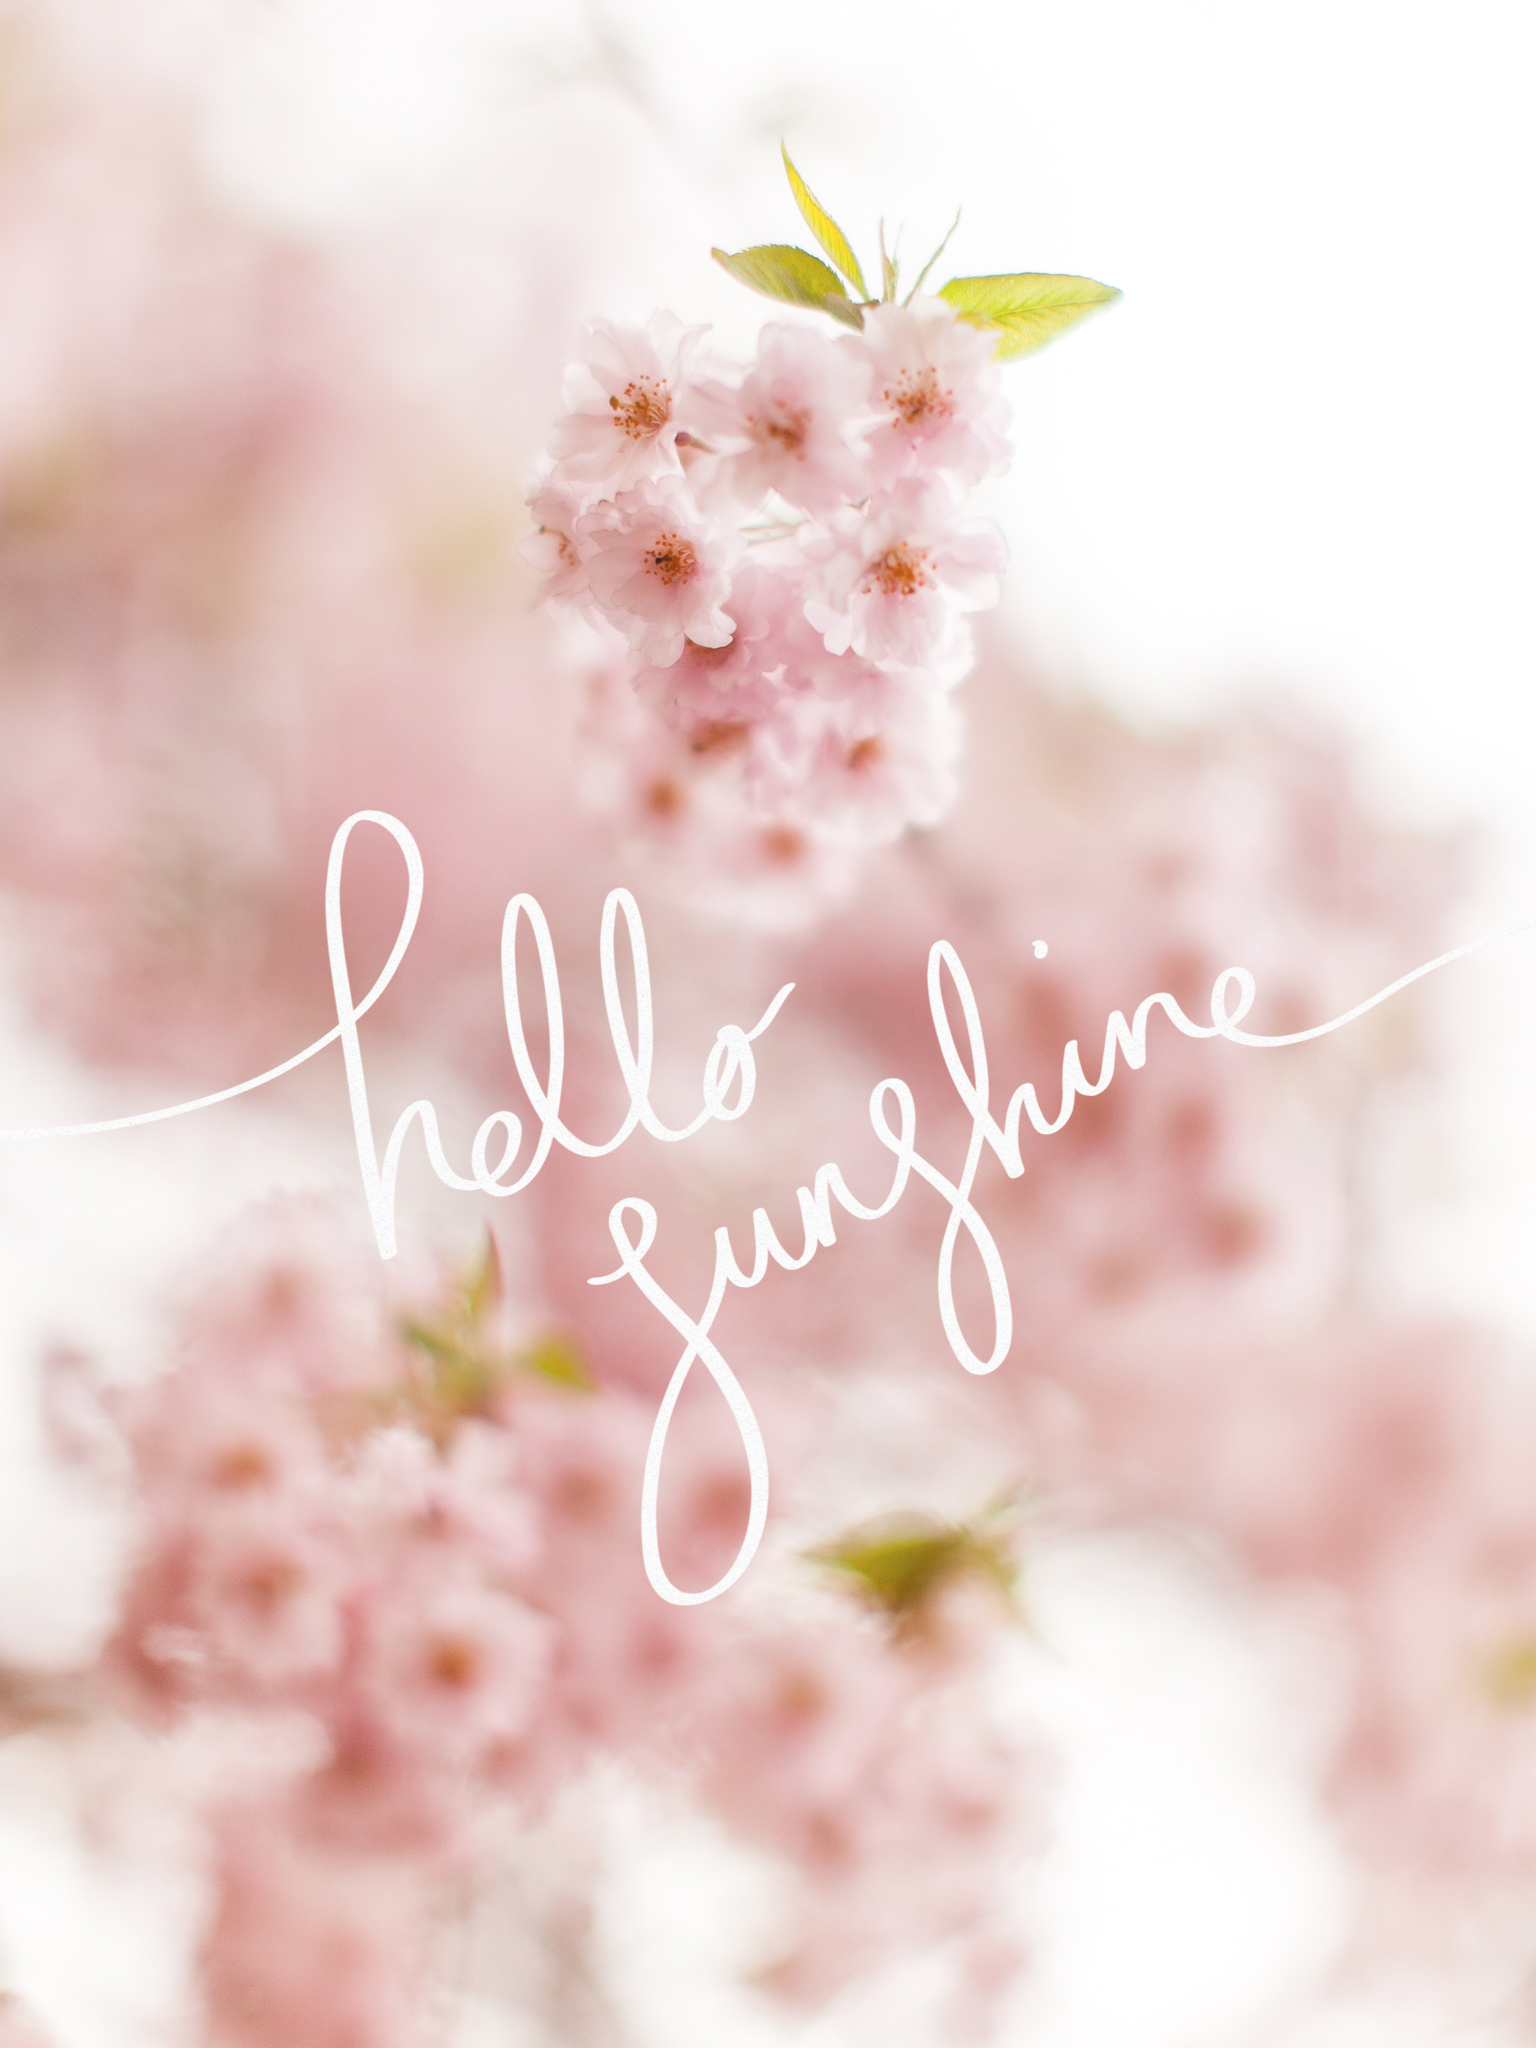 Hello Beautiful Wallpaper Images